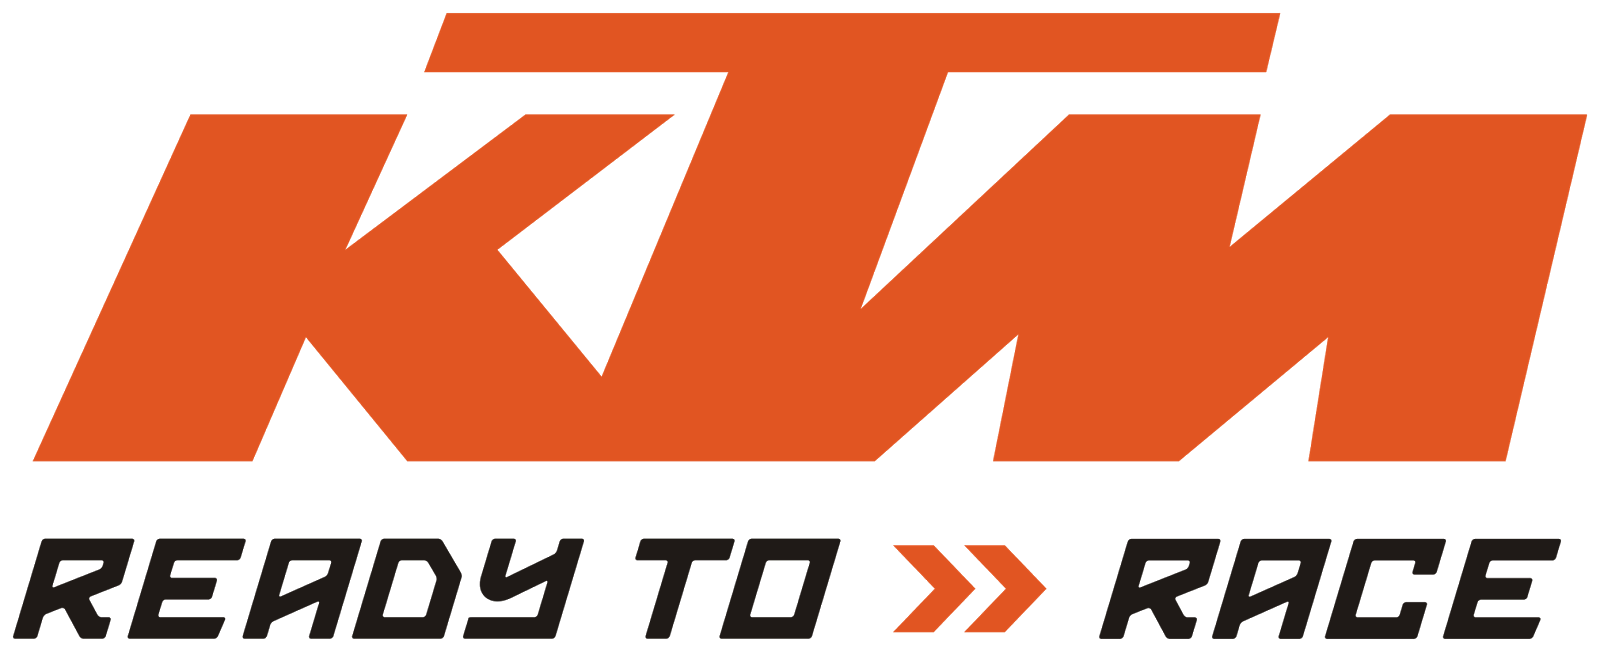 Ktm Ready To Race Vector